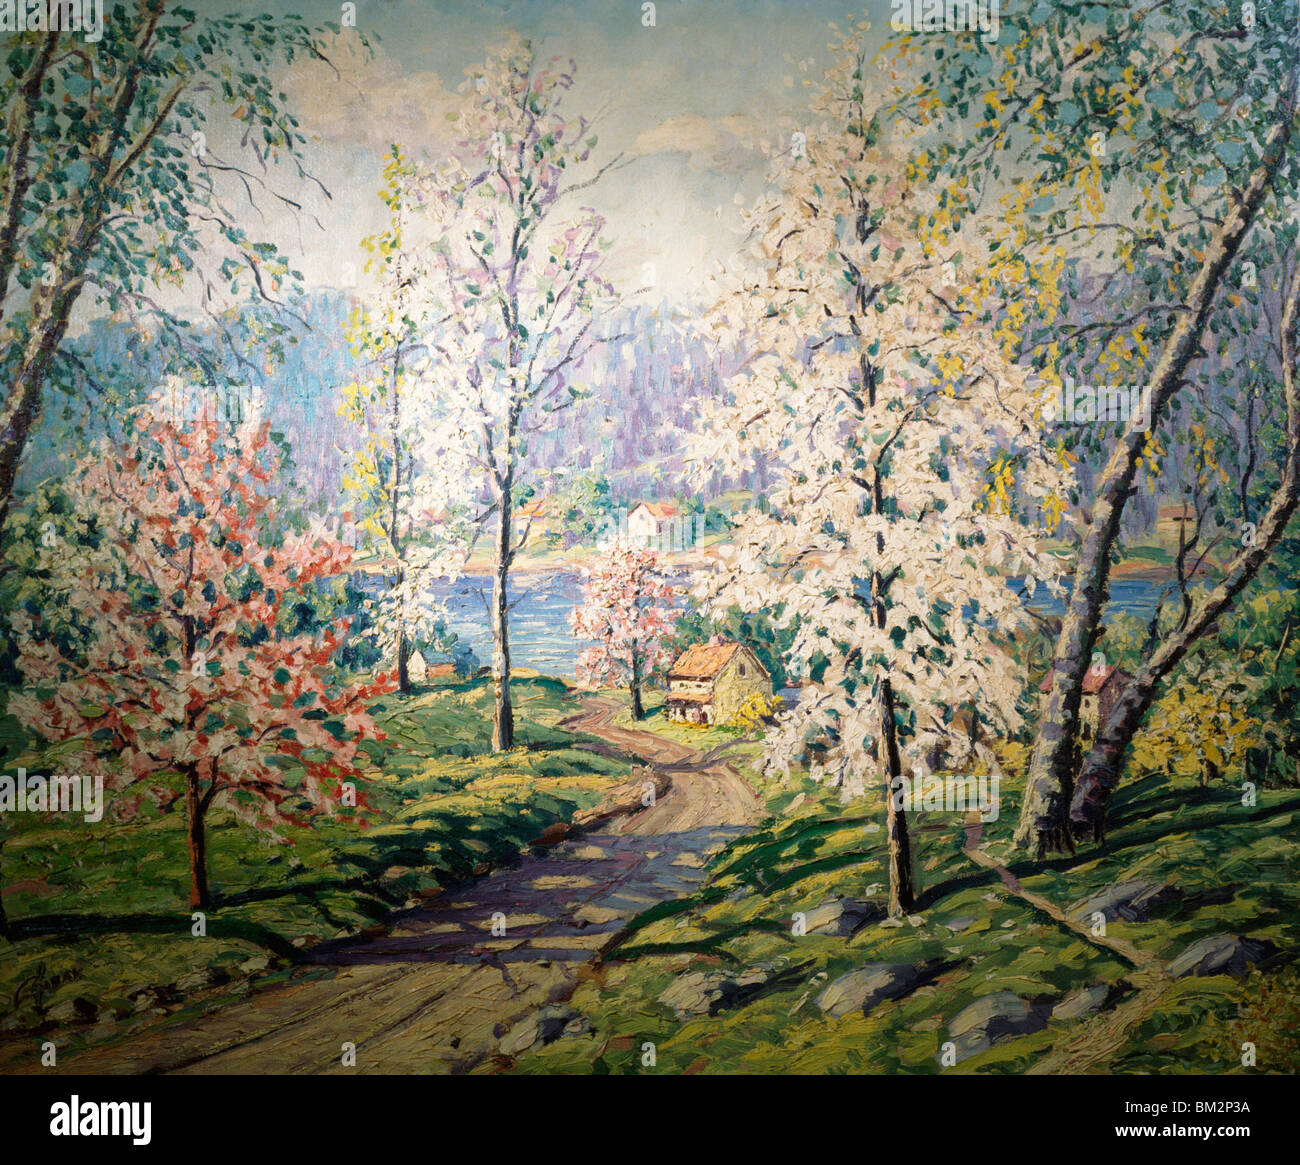 Spring Along The Delaware by Carol Sirak,  oil on canvas,  (1906-1976),  USA,  Pennsylvania,  Philadelphia,  David - Stock Image